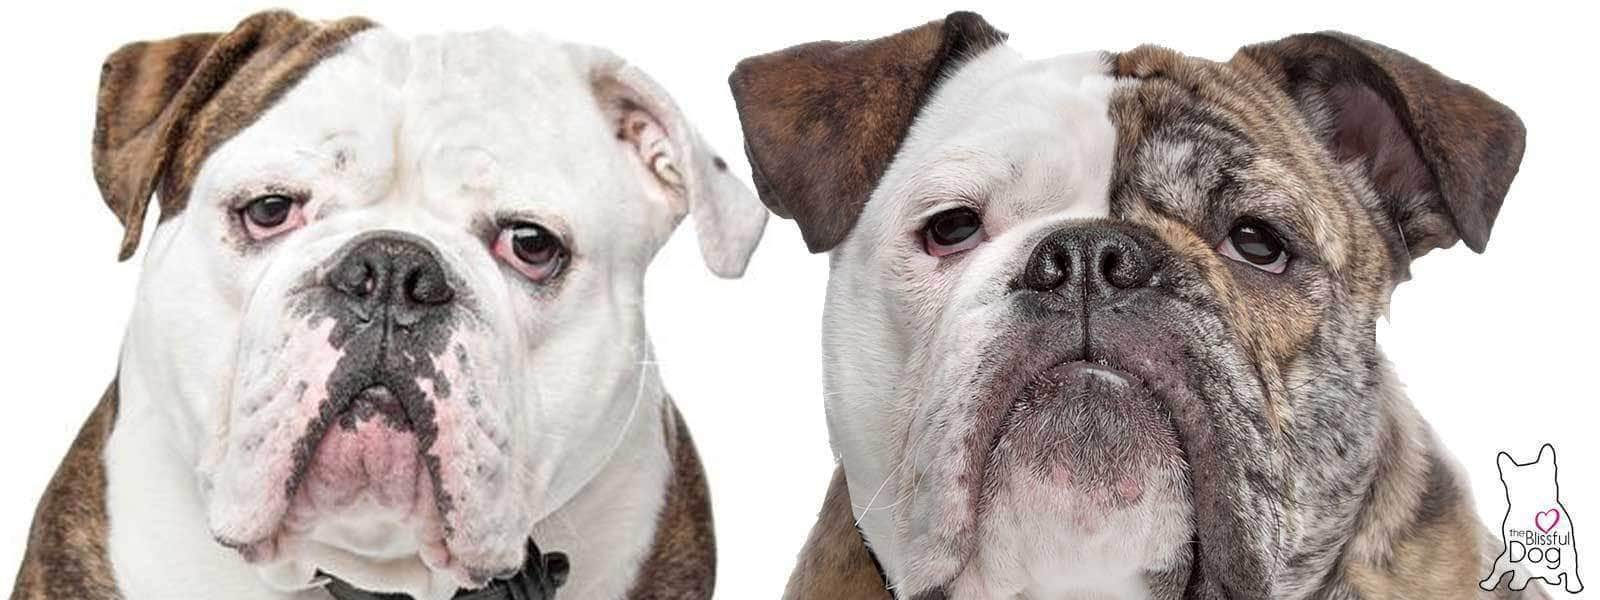 The Olde English Bulldogge History - The Realization of a Dream